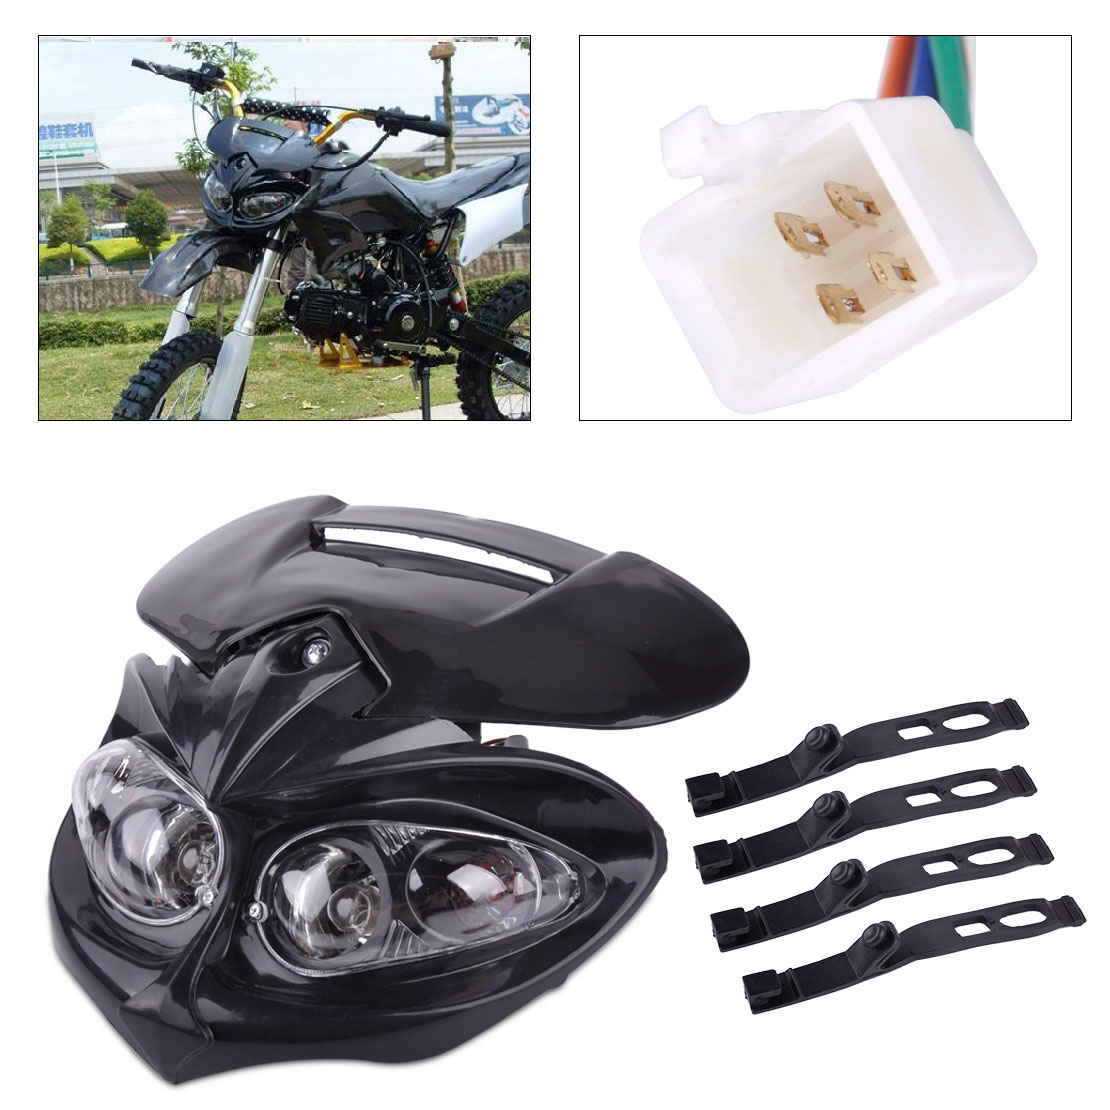 beler 5 Pin Motorcycle Front Head Dual Sport Light Lamp Fairing with Mounting Strap Fit for Street Fighter Off-road Street Ran image